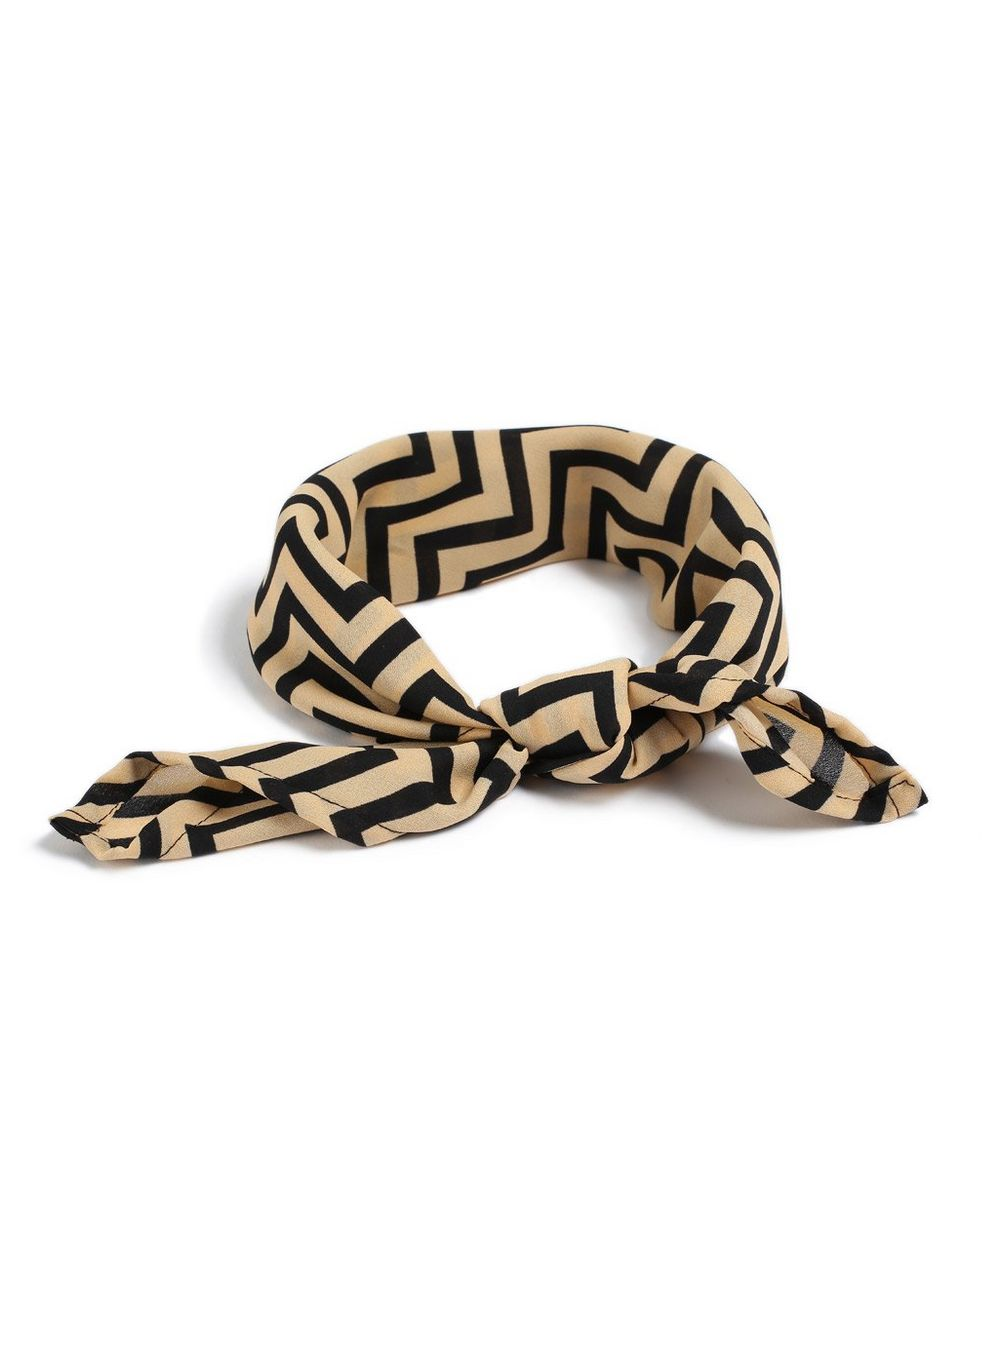 Topman bandana - £10 - An essential if you want to look like Antoni from Queer Eye this season.